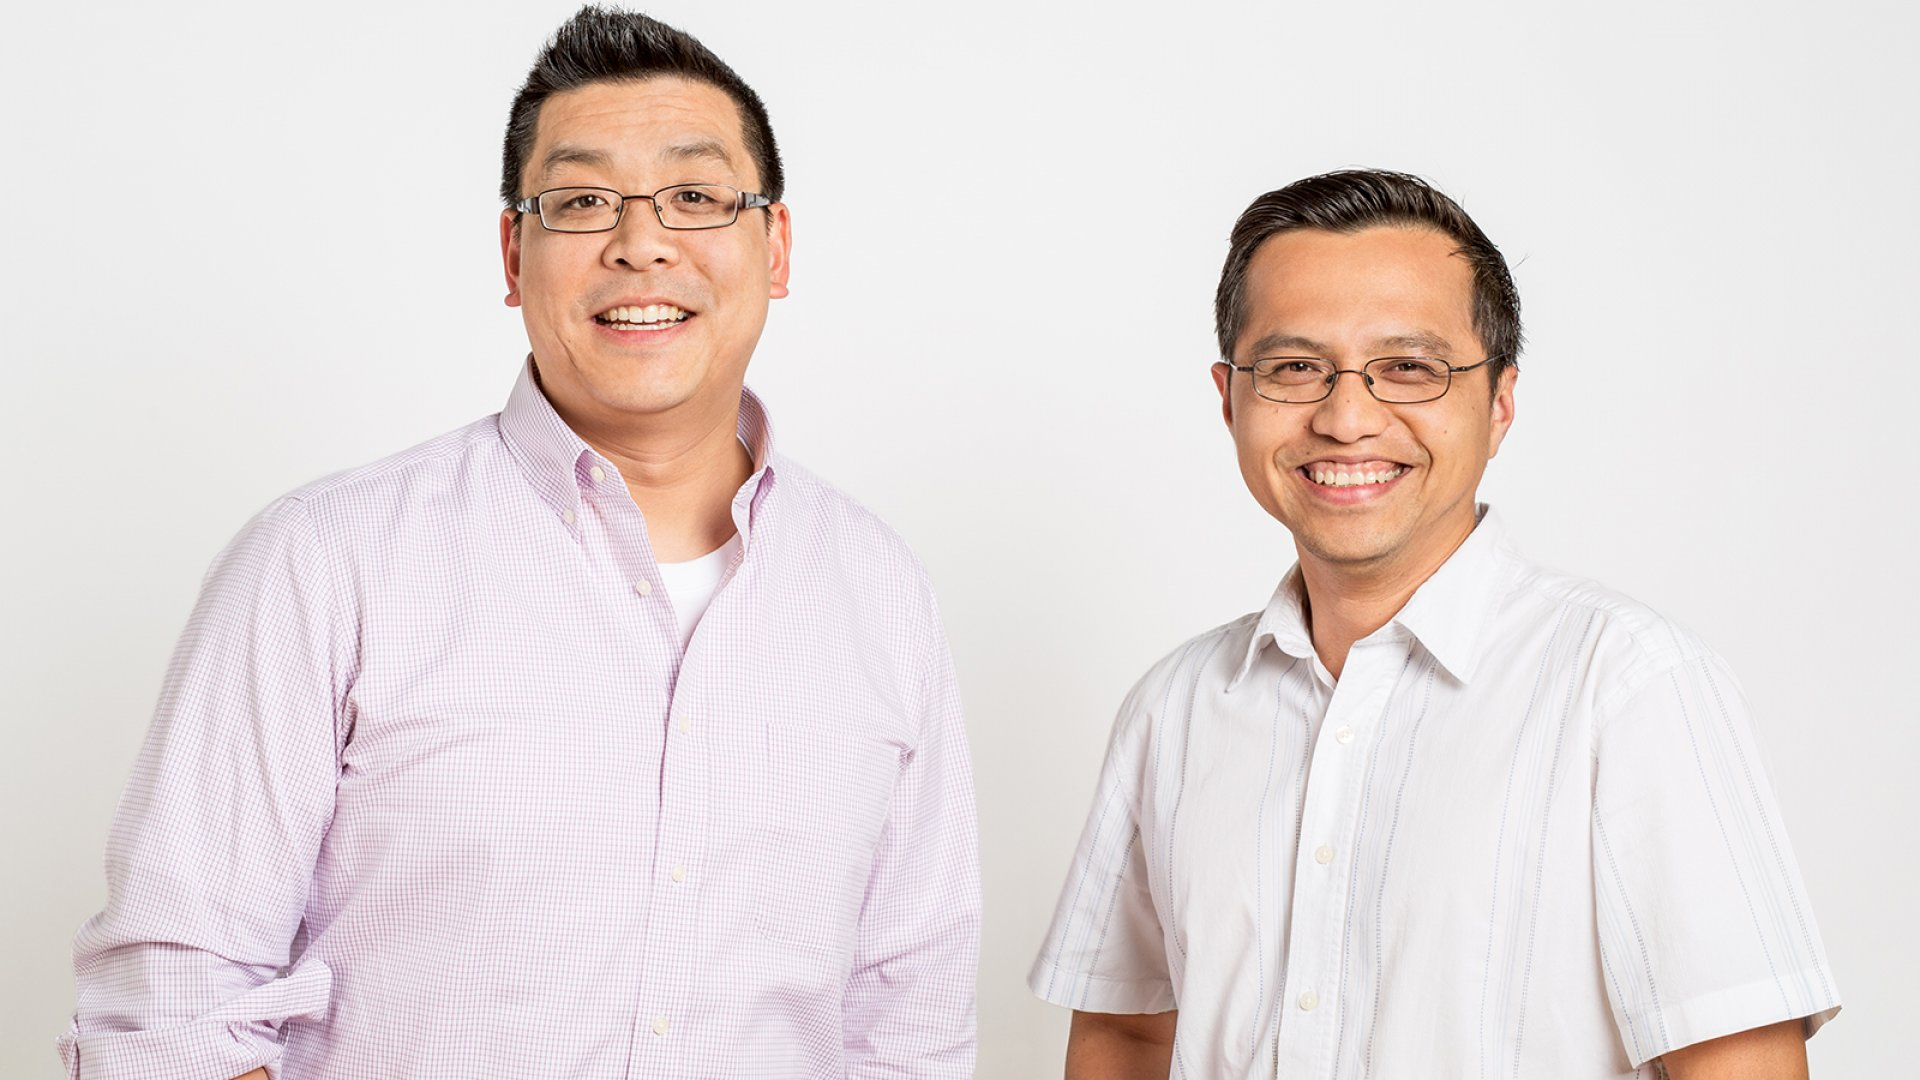 Munchery co-founders Tri Tran (right) and Conrad Chu started their dinner-delivery company in 2013. Since, they have amassed nearly $117 million in venture capital funding and are rapidly expanding their company's reach to urban zip codes around the United States.